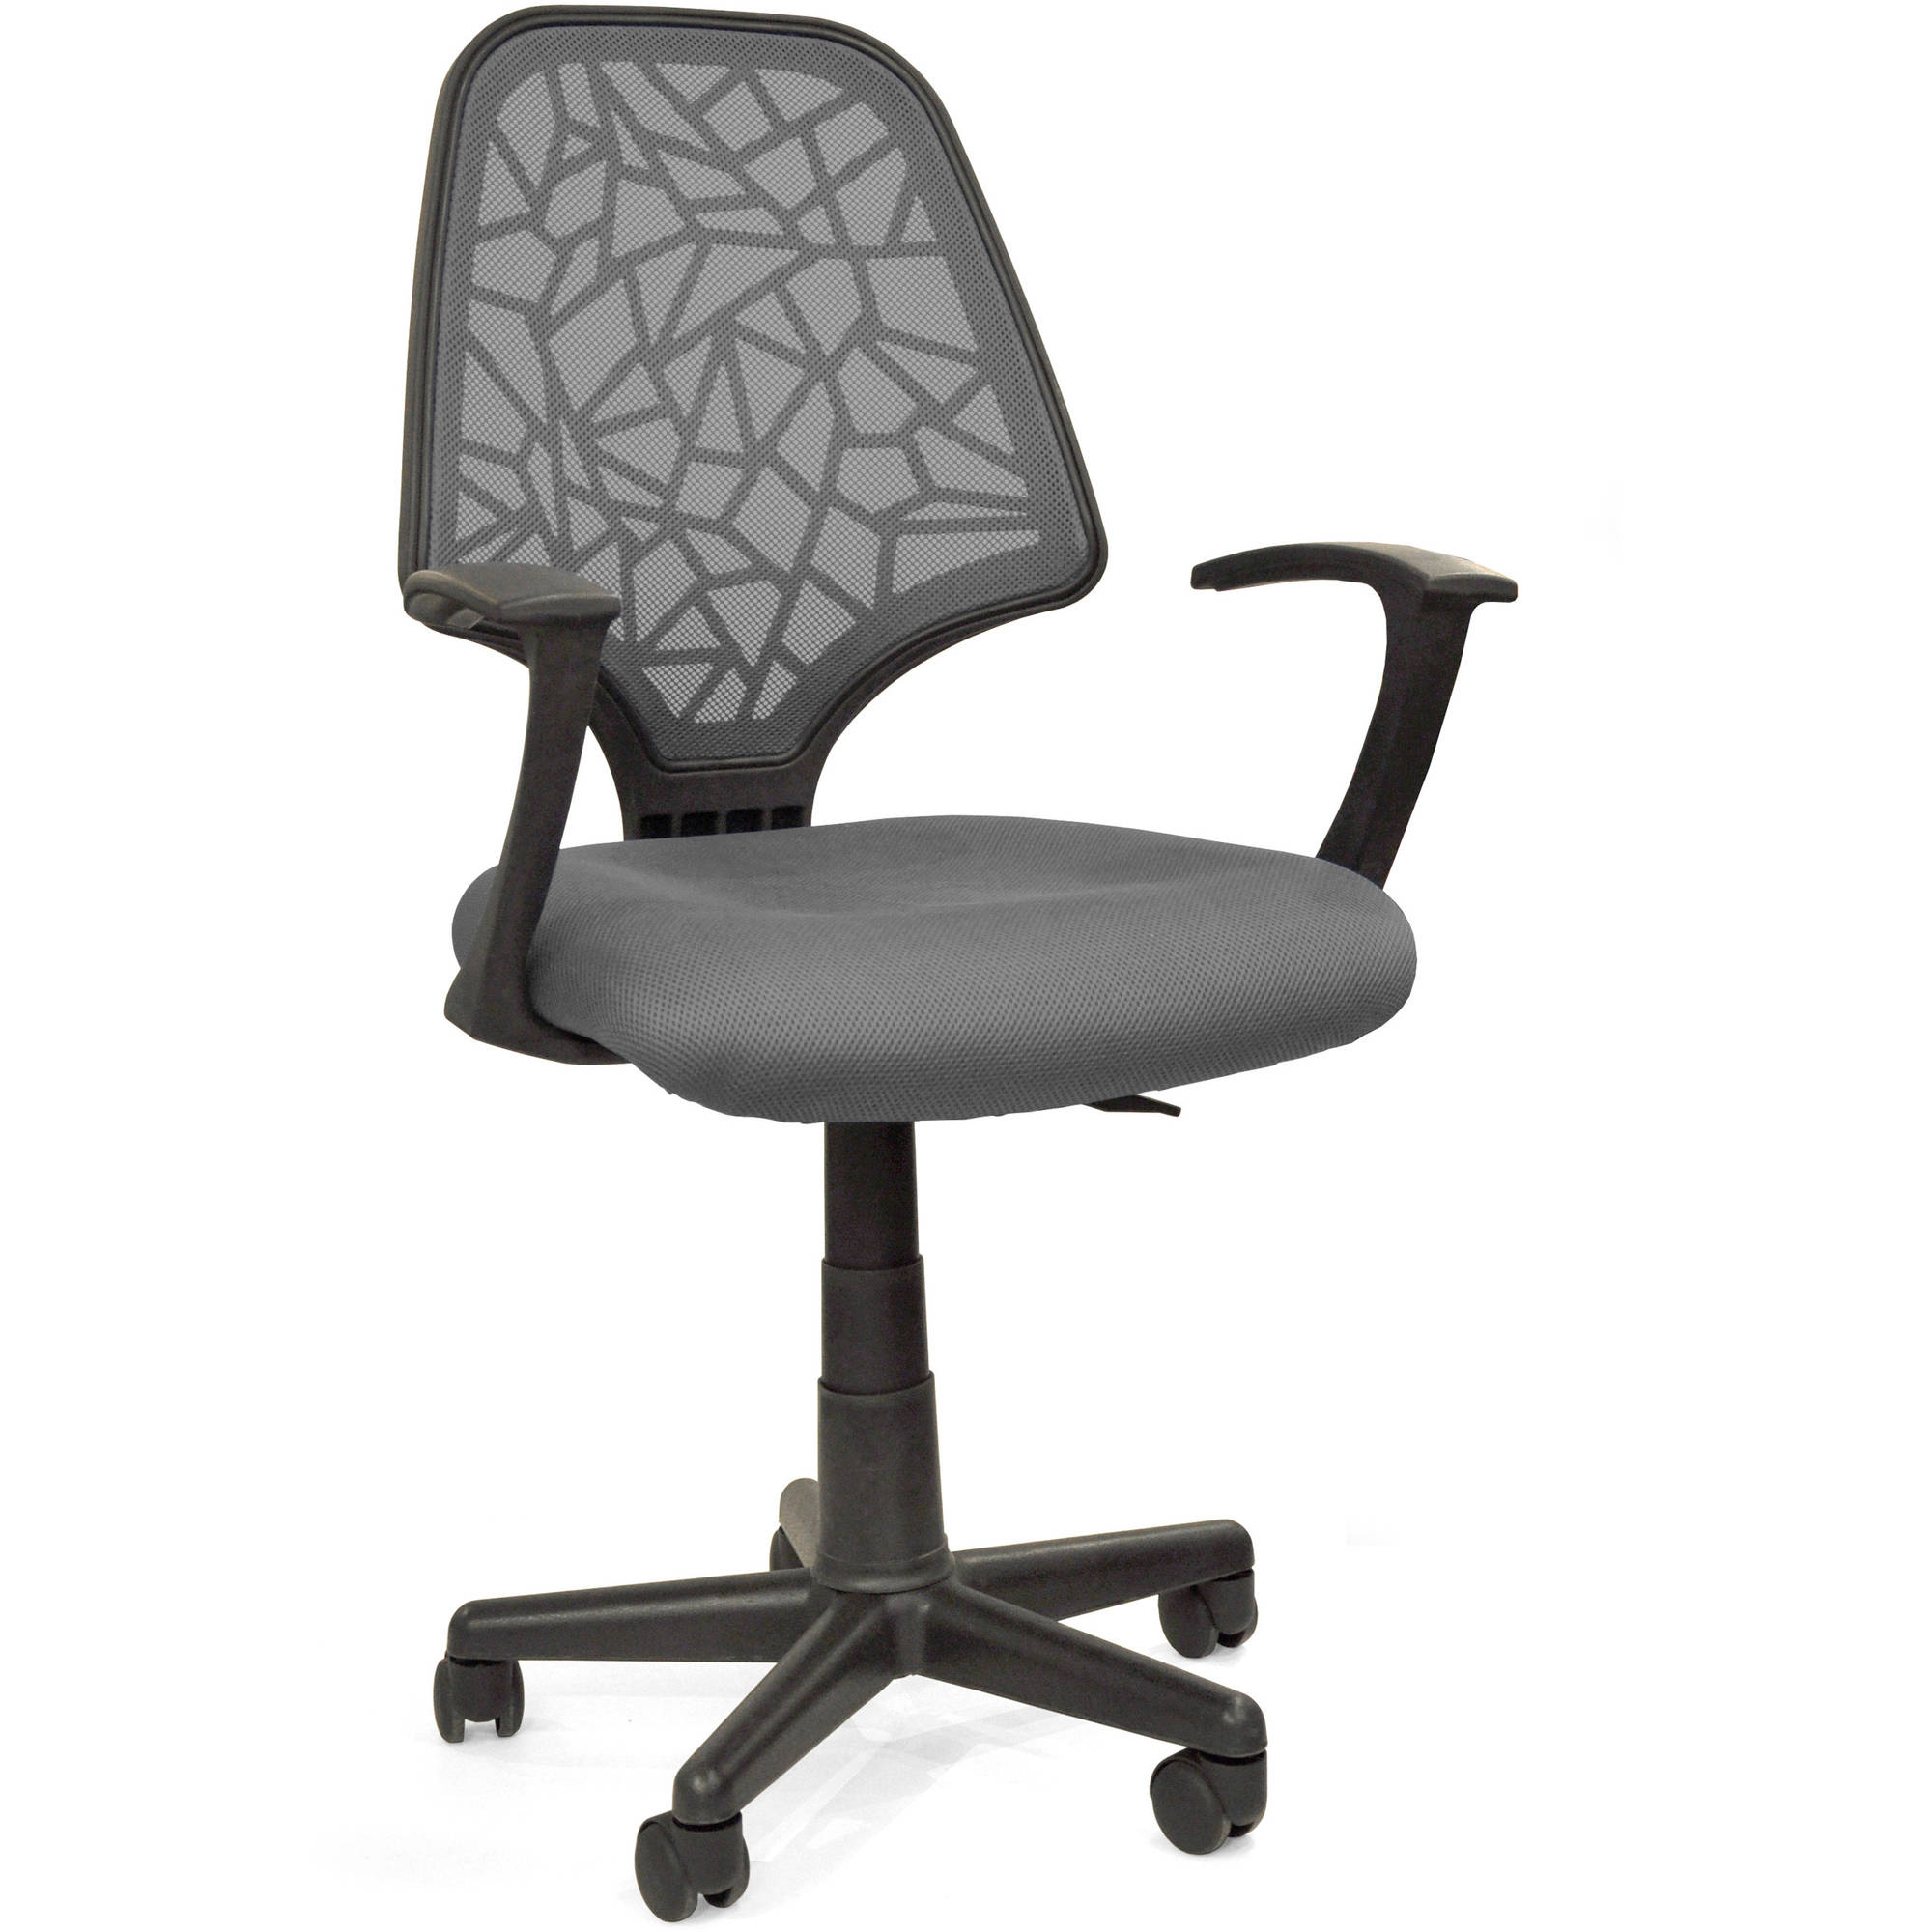 your zone crackled chair with armrests, Grey